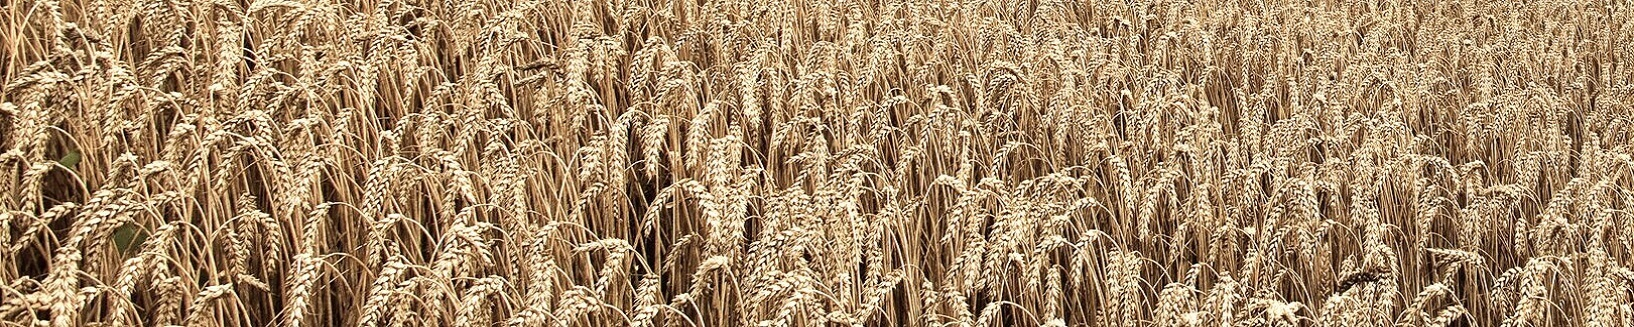 Ripe Wheat.jpg